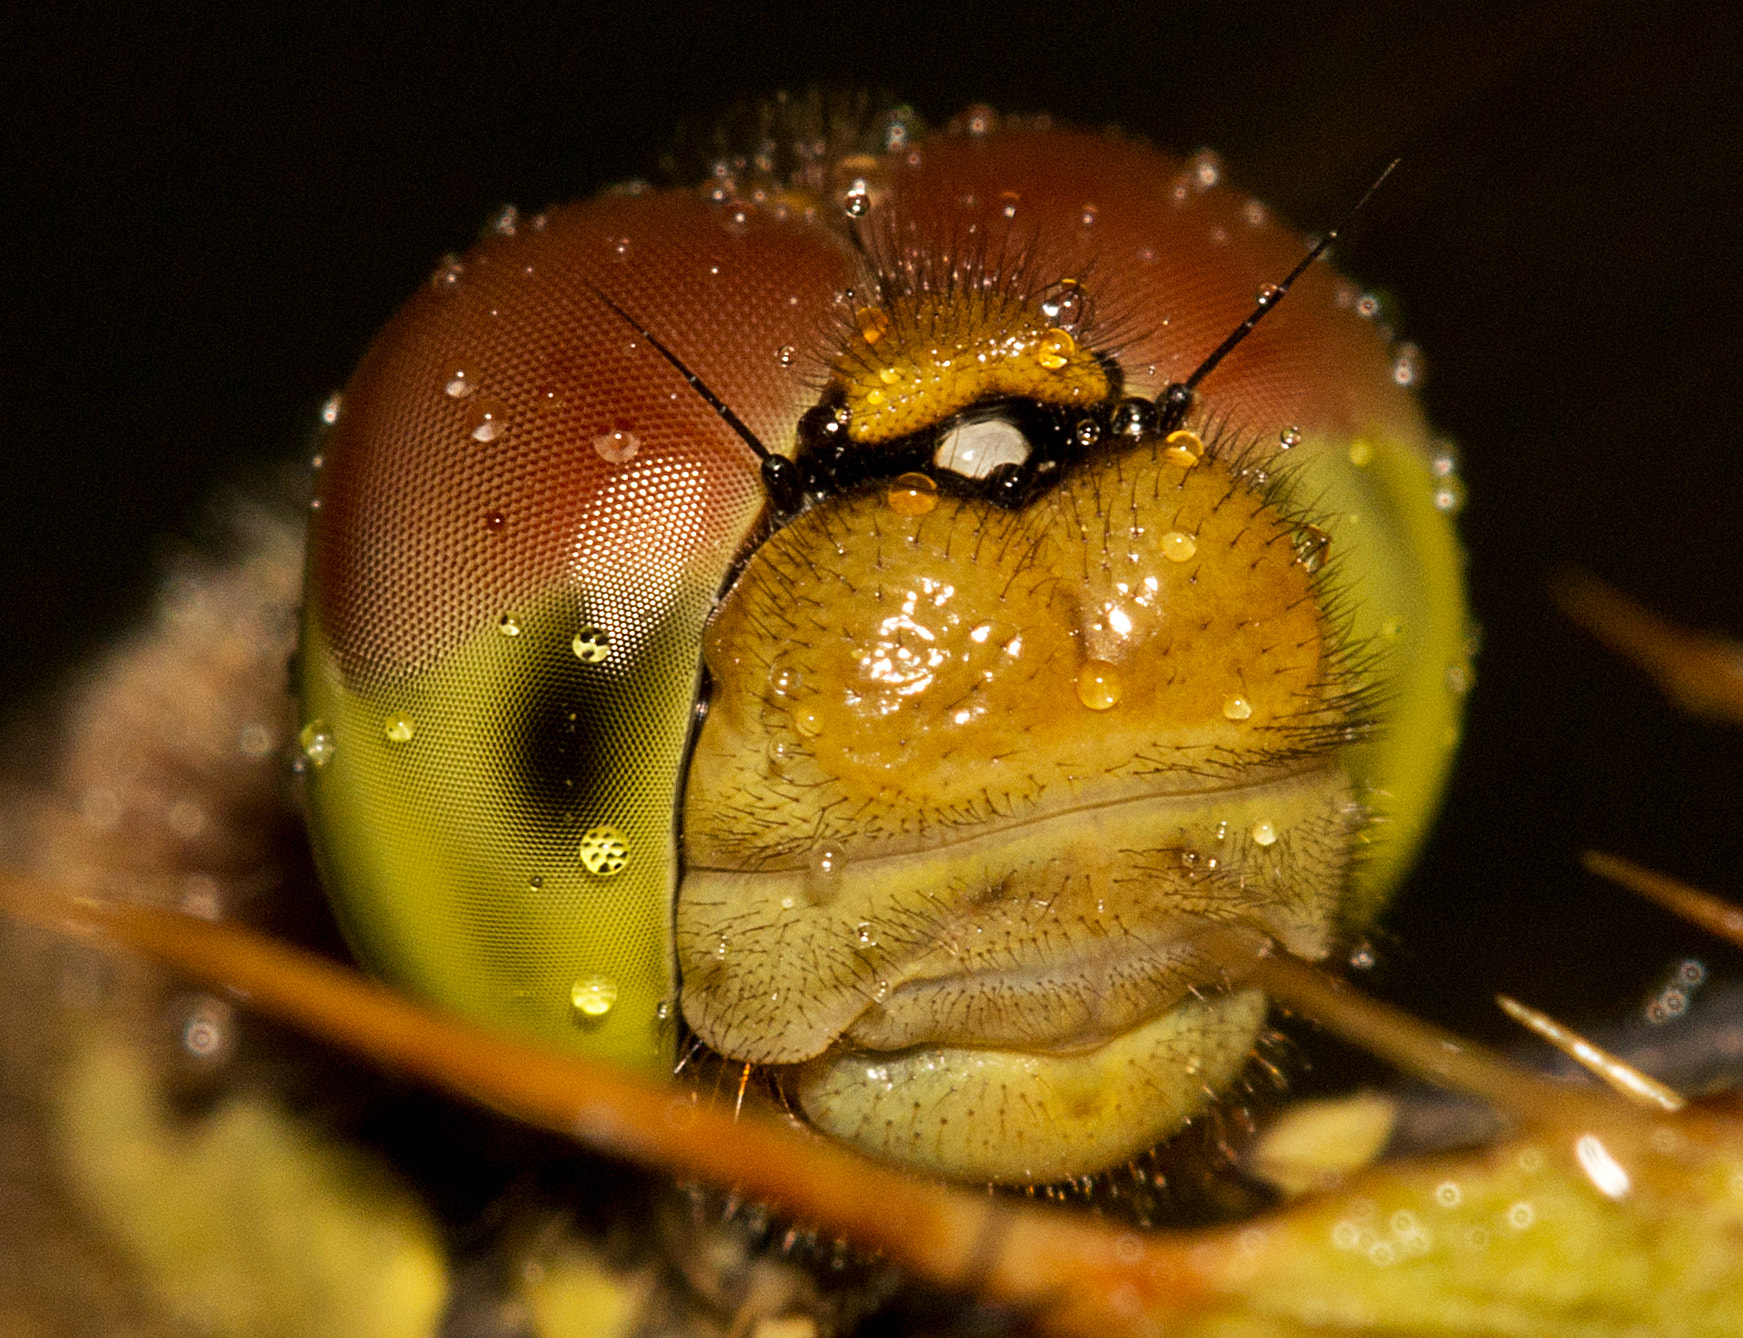 Photograph Common Darter Dragonfly Closeup by Mike Smith on 500px